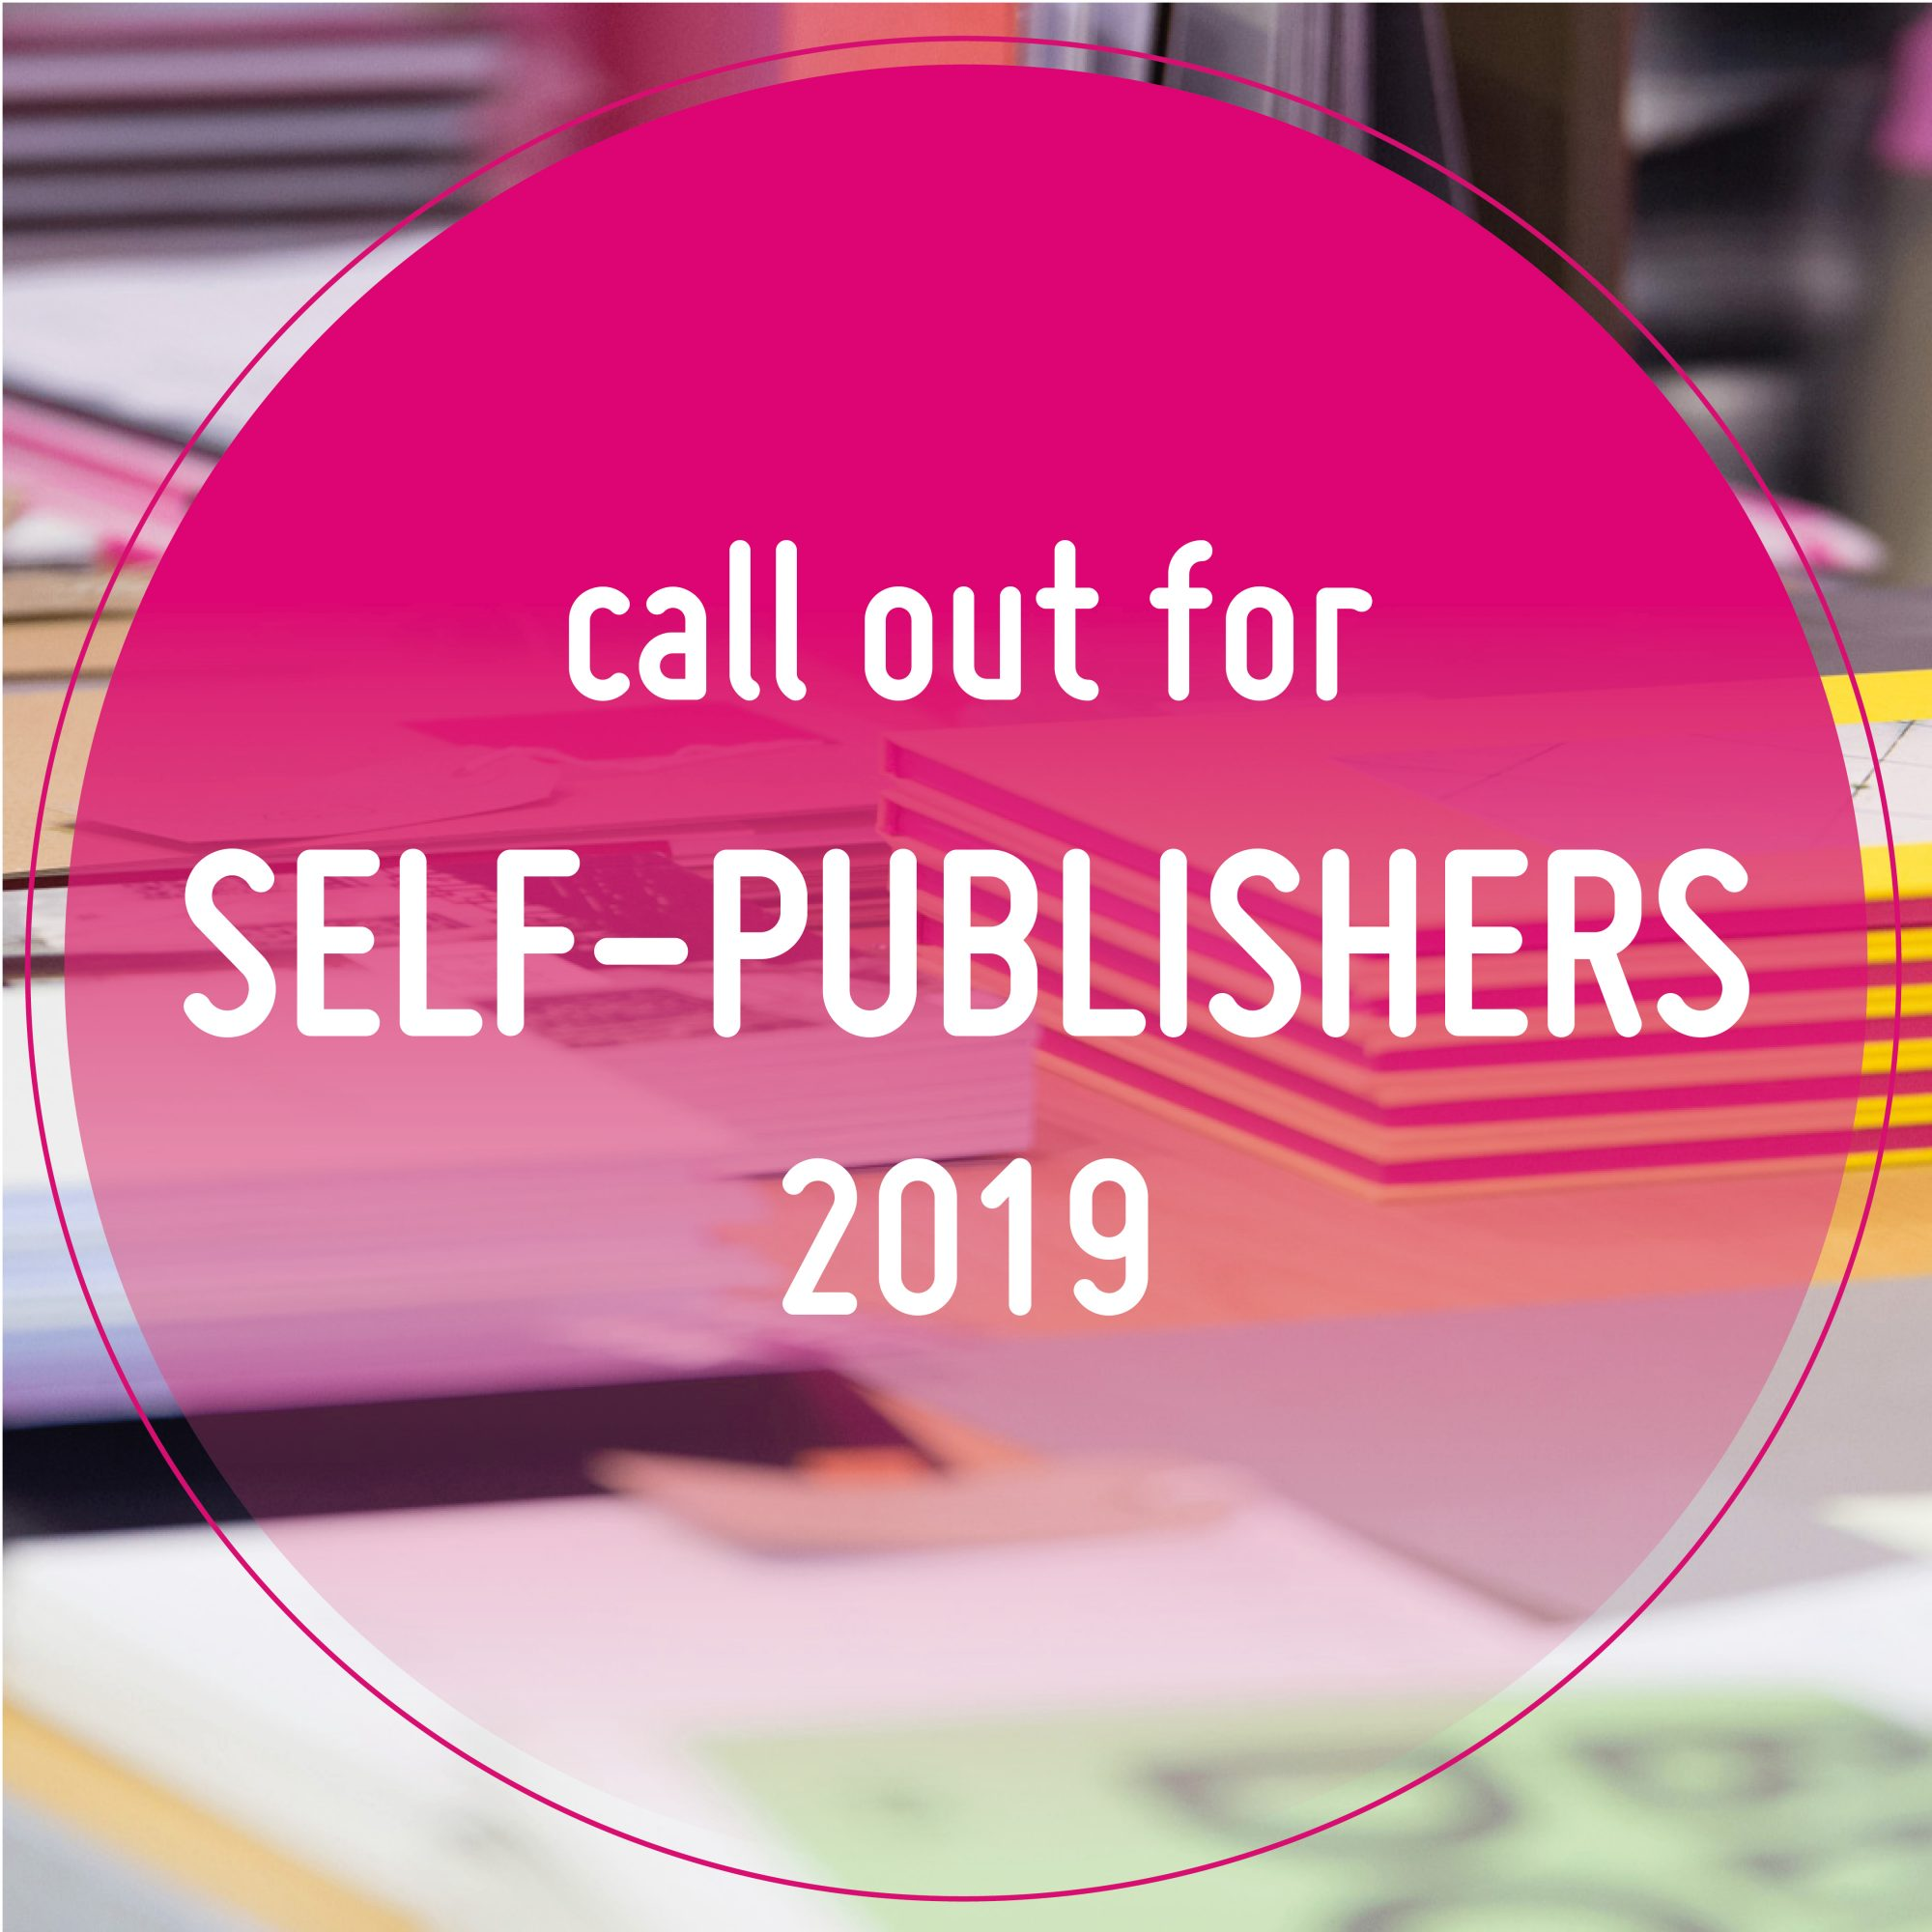 Call out for Self-publishers